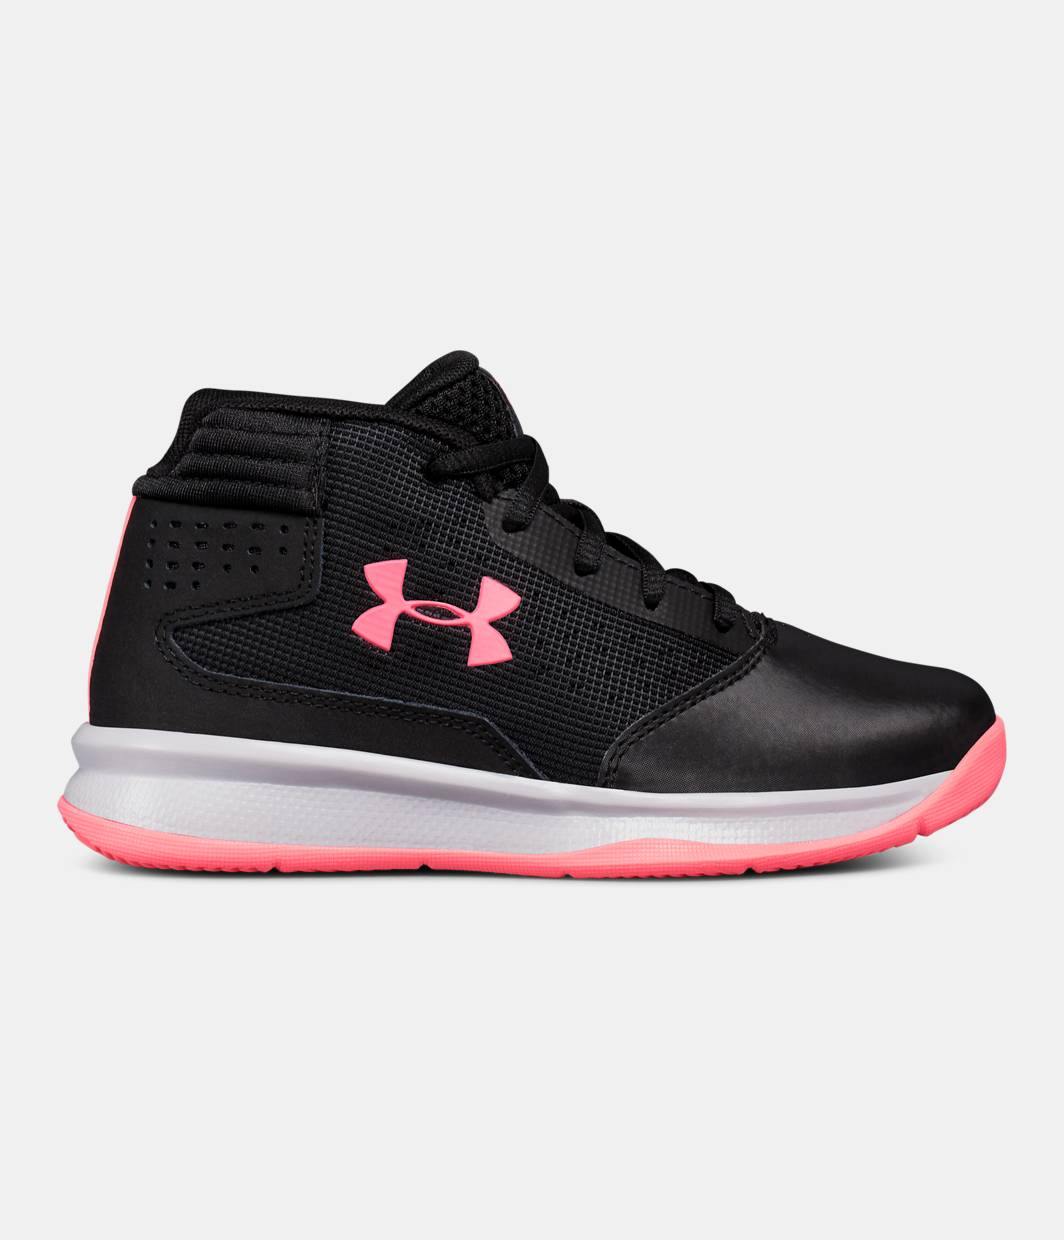 edcca9a2 under armour girls basketball shoes